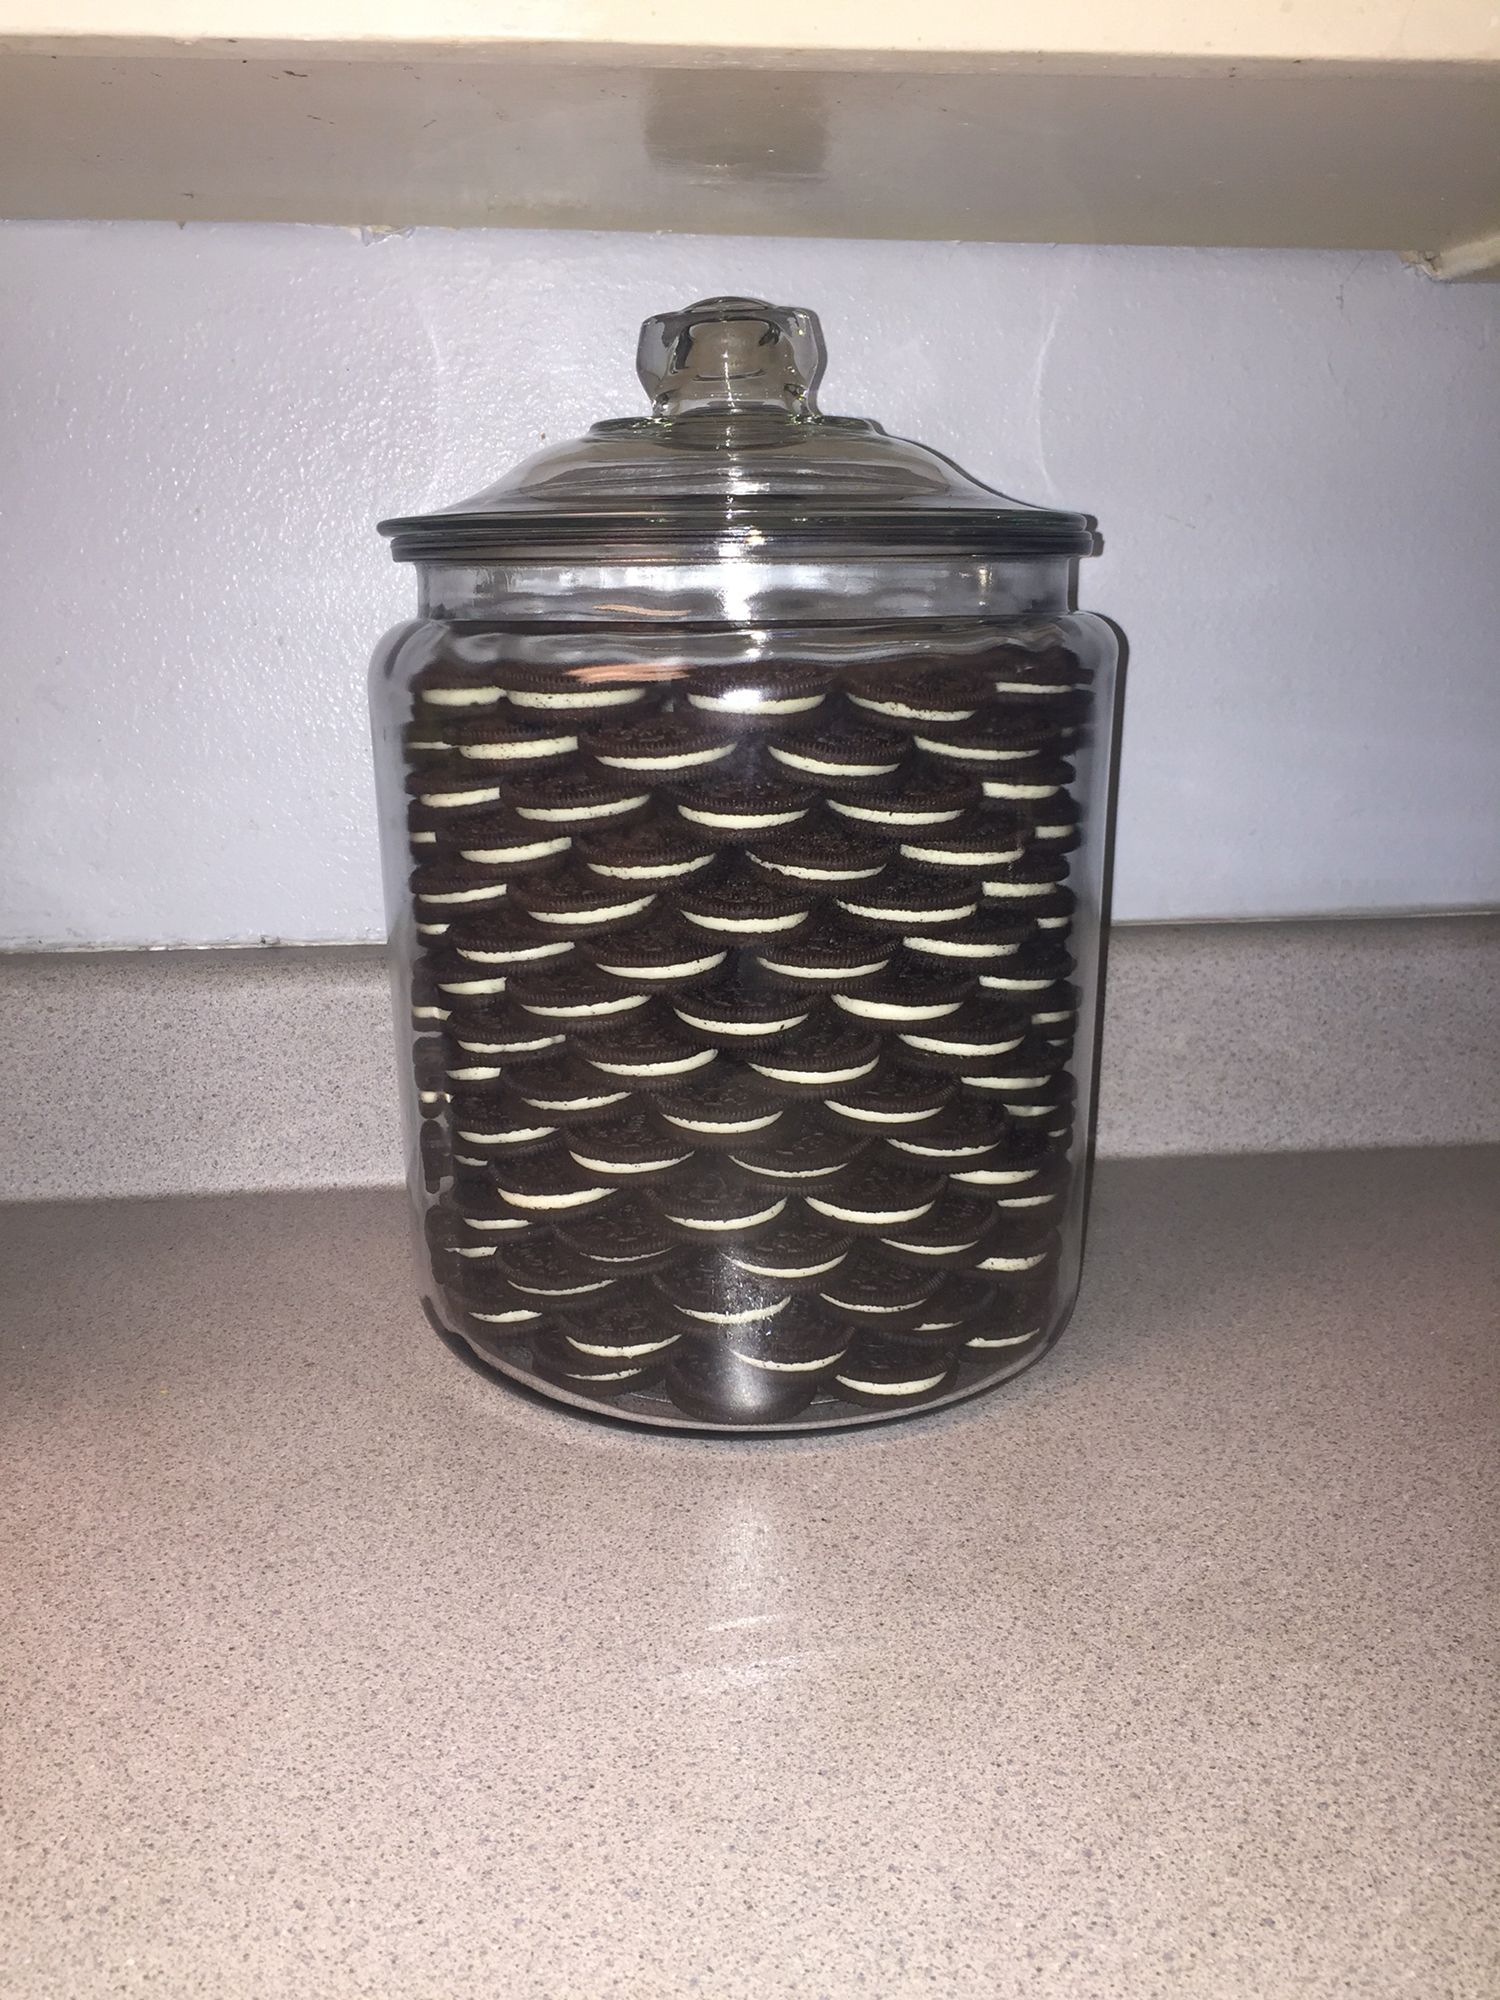 Khloe kardashian inspired cookie jar jar 6 for Kitchen jar decoration